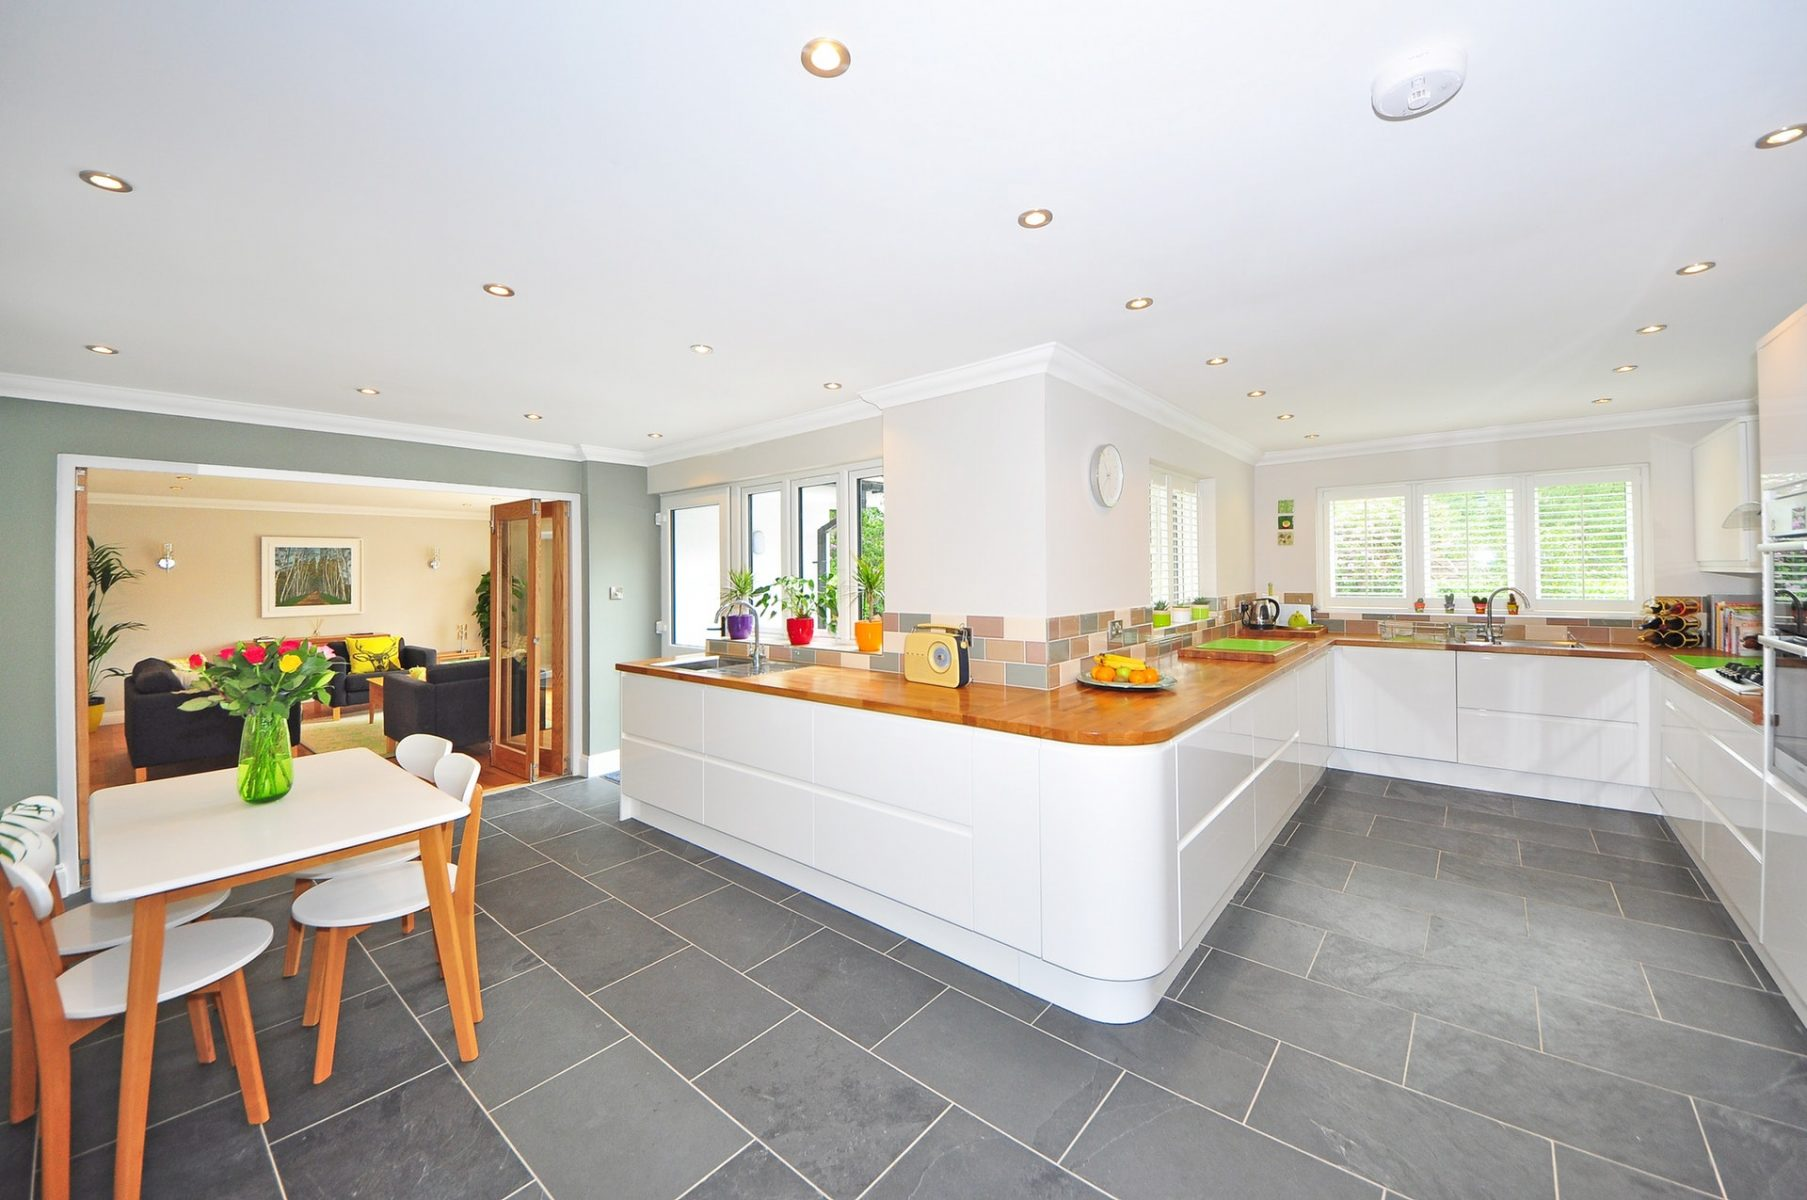 tilers london, Professional Tilers London